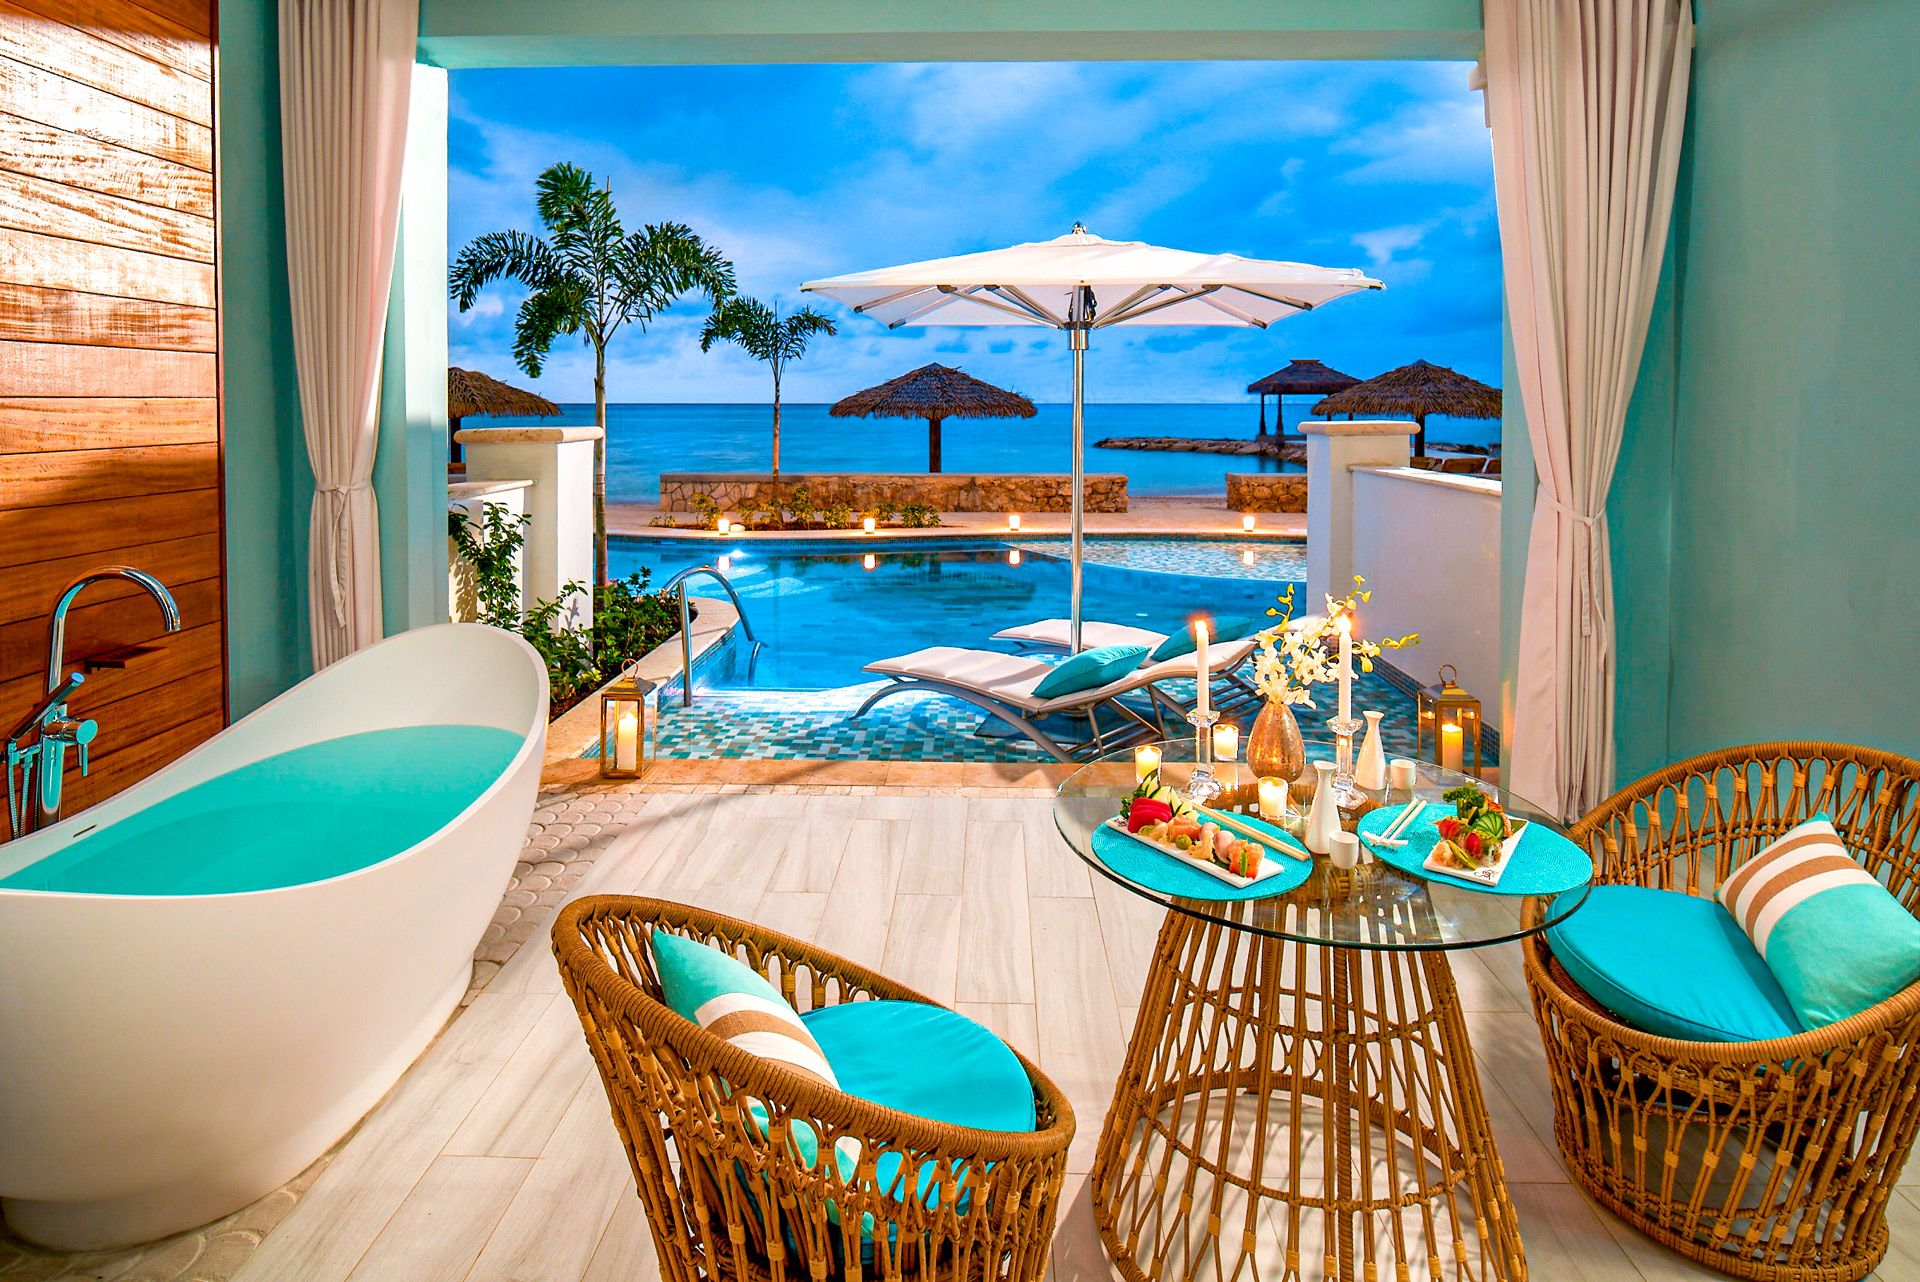 Beachfront Swim Up Millionaire One Bedroom Butler Suite Inside